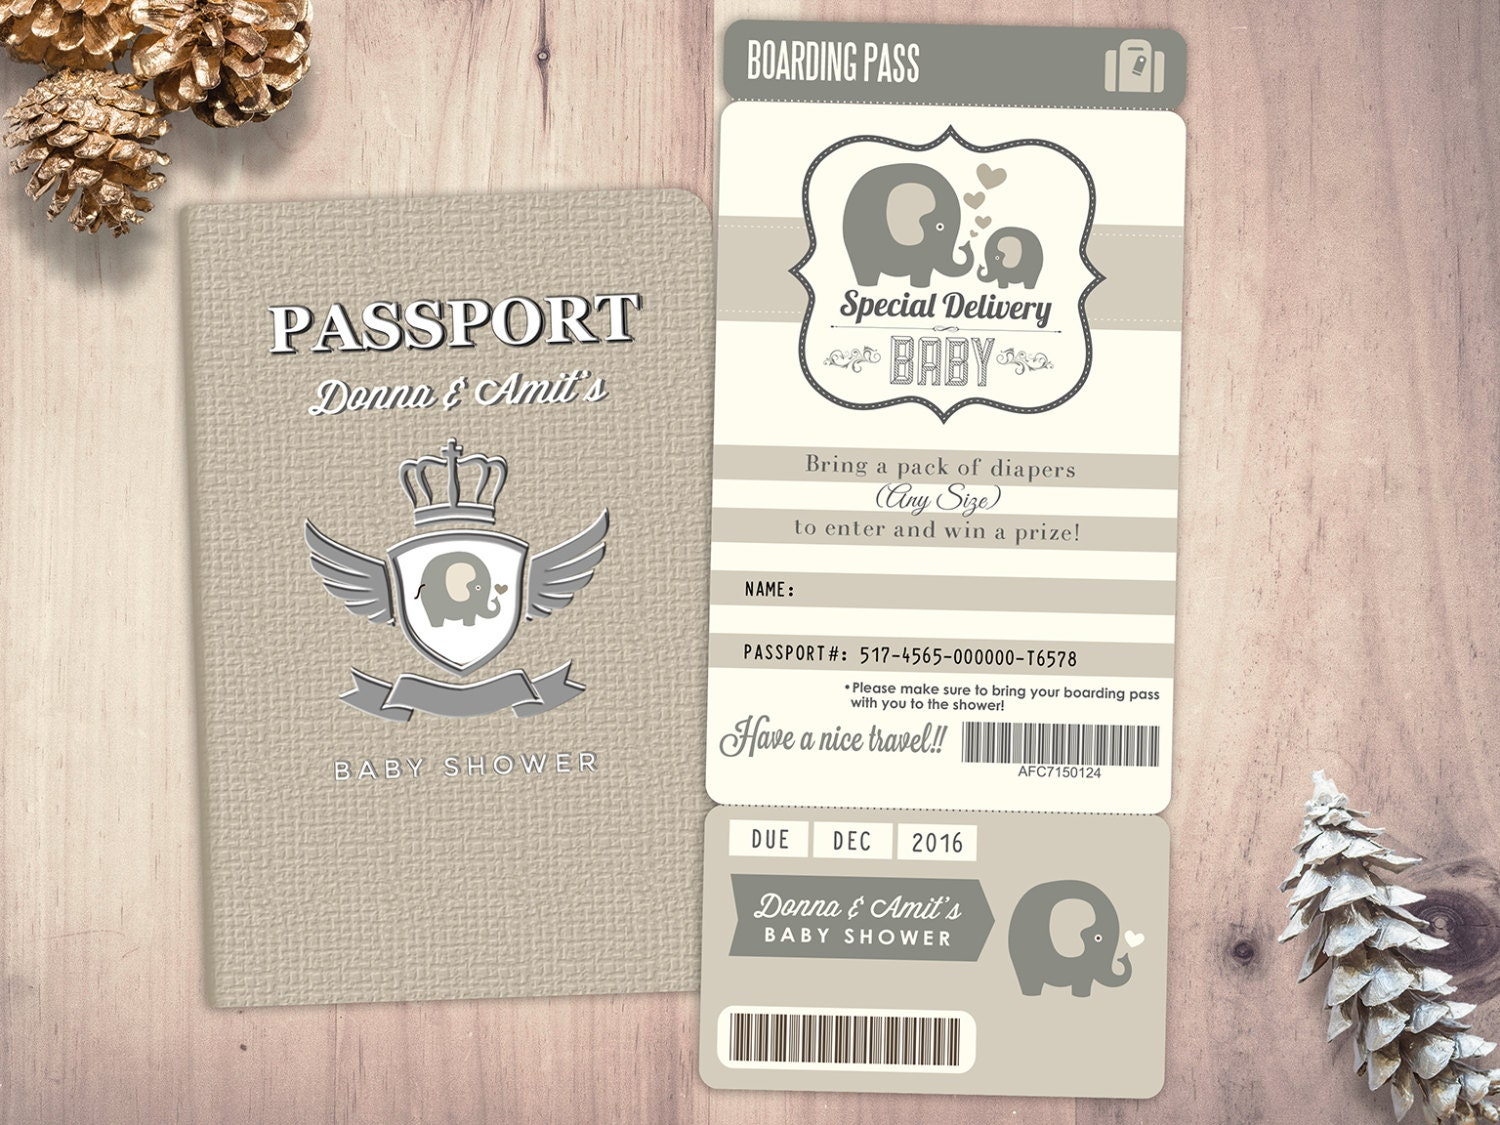 Passport and ticket baby shower invitation coed baby shower passport and ticket baby shower invitation coed baby shower invitation travel baby shower couples baby shower digital files only filmwisefo Image collections